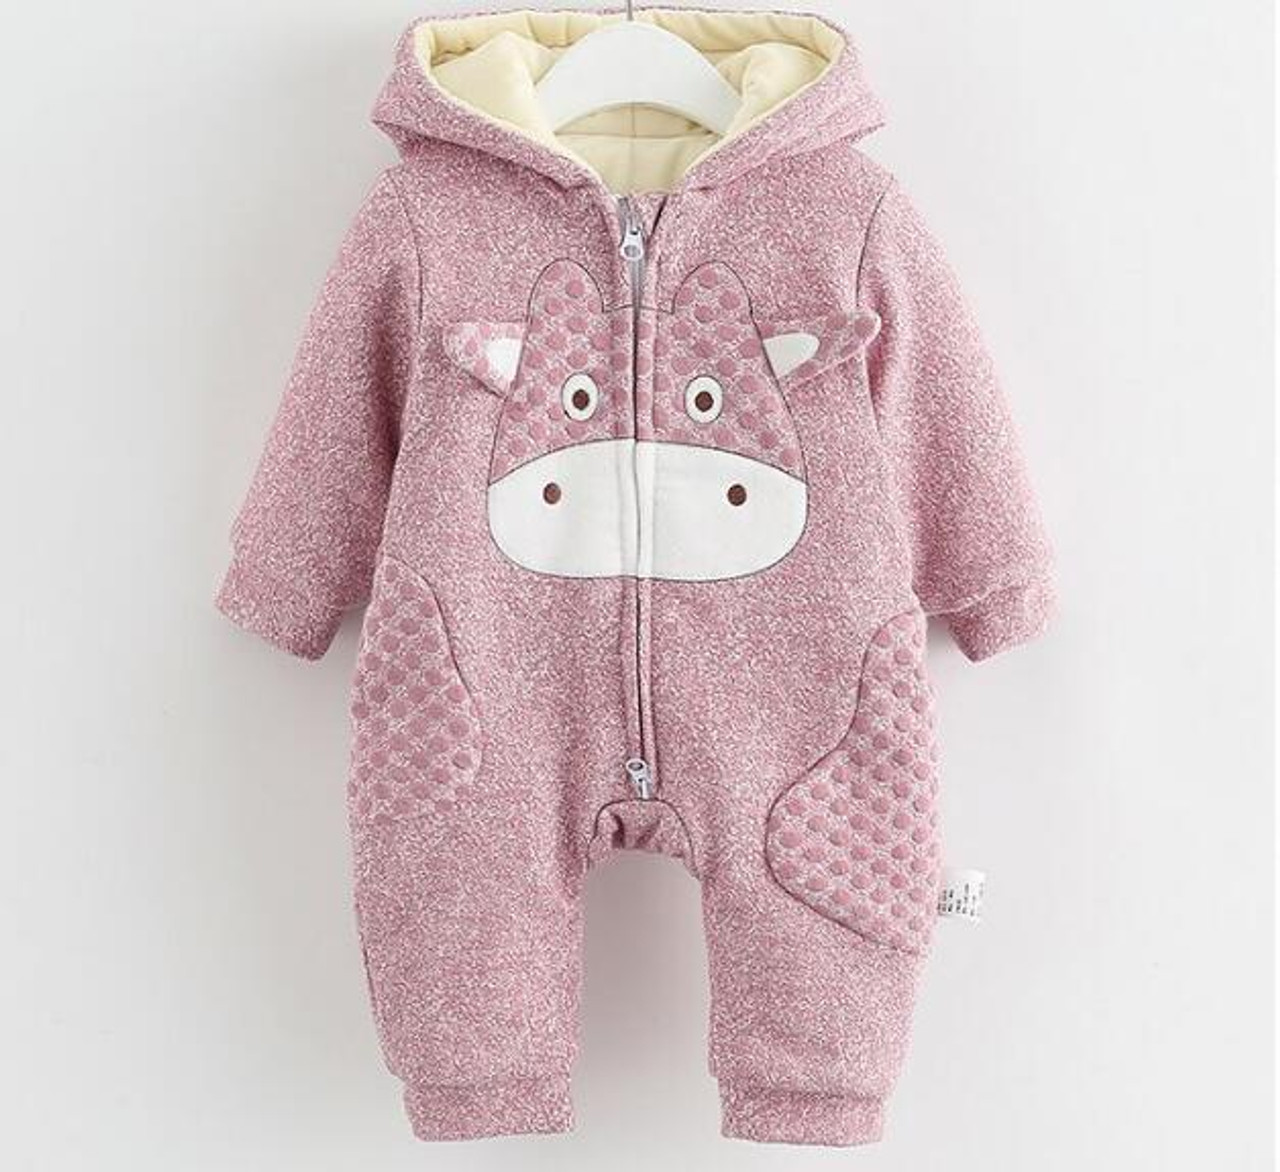 910edacb5845c Winter Baby Romper Animal Thick Warm Baby Boys Girls Clothes Hooded Newborn  Baby Clothes Toddler Infant Baby Overalls Jumpsuit